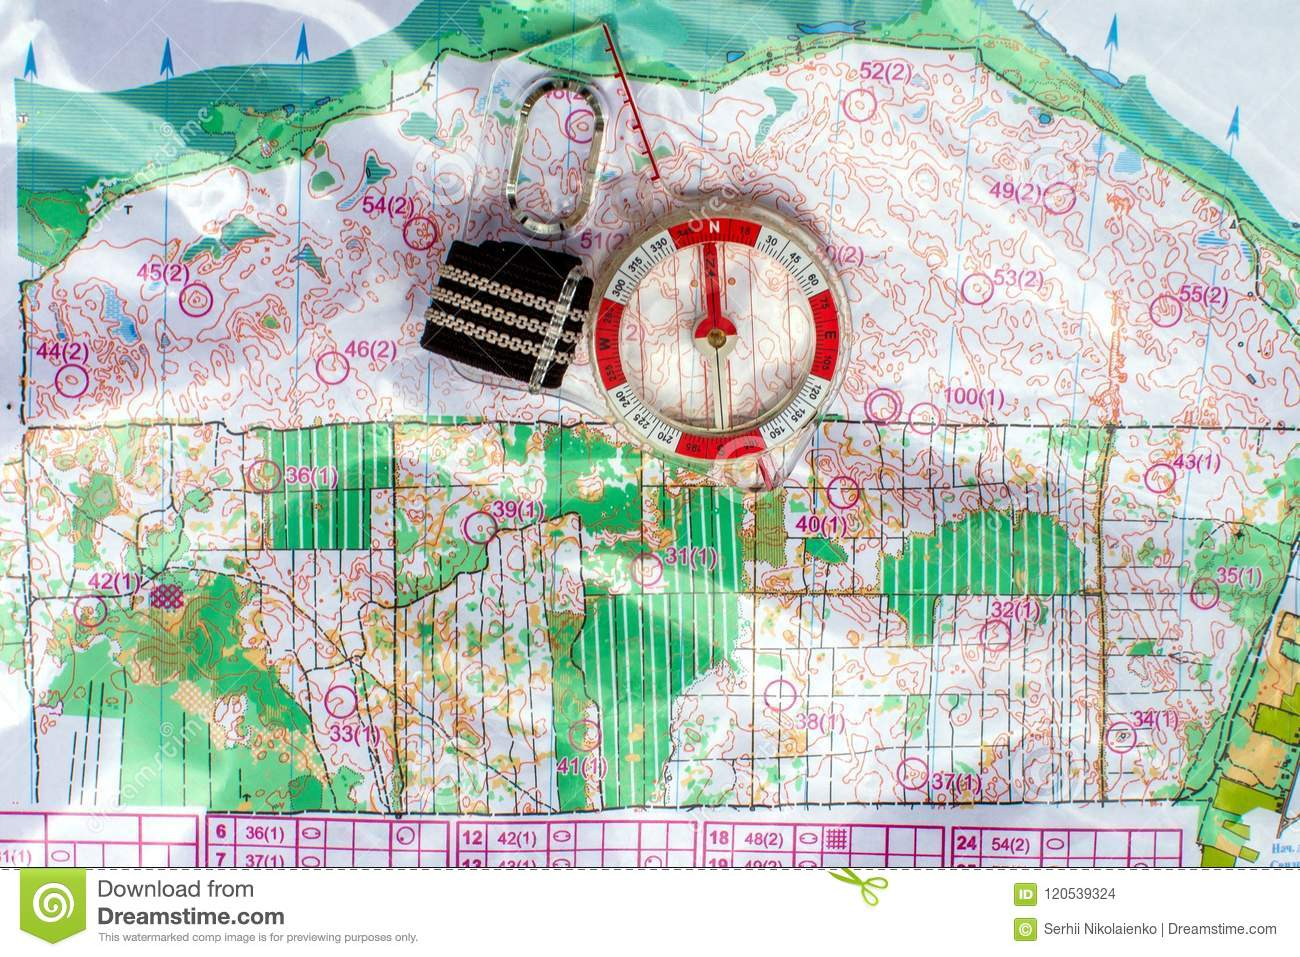 Topographic Map Games.Orienteering Compass And Topographic Map Navigation Equipment For